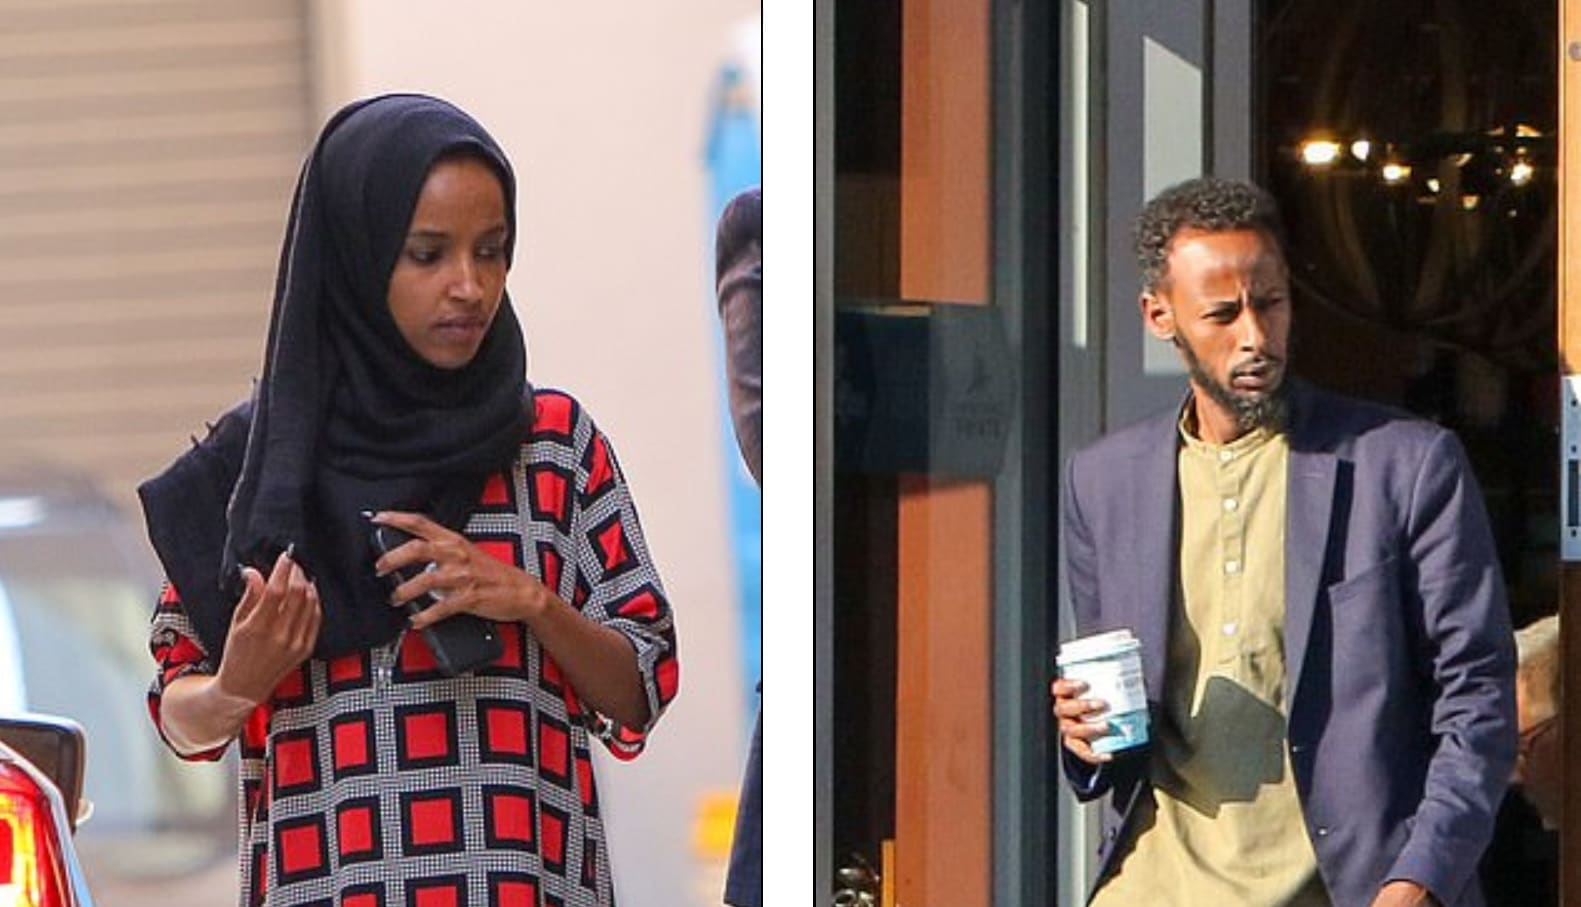 Ilhan Omar Heads for Third Divorce, Moves Into Luxury ...Ilhan Omar Husband